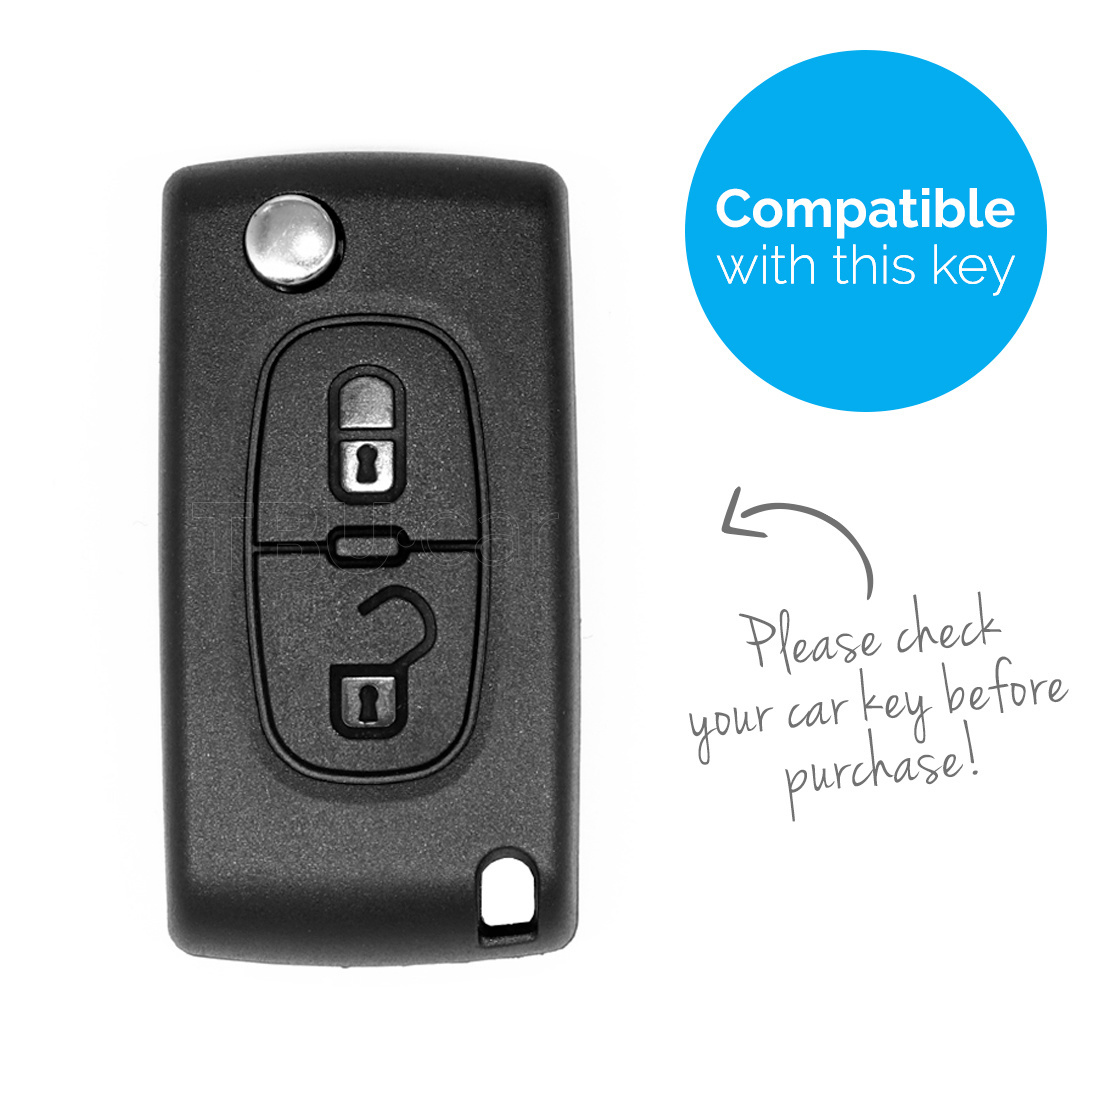 TBU car TBU car Car key cover compatible with Citroën - Silicone Protective Remote Key Shell - FOB Case Cover - Pink